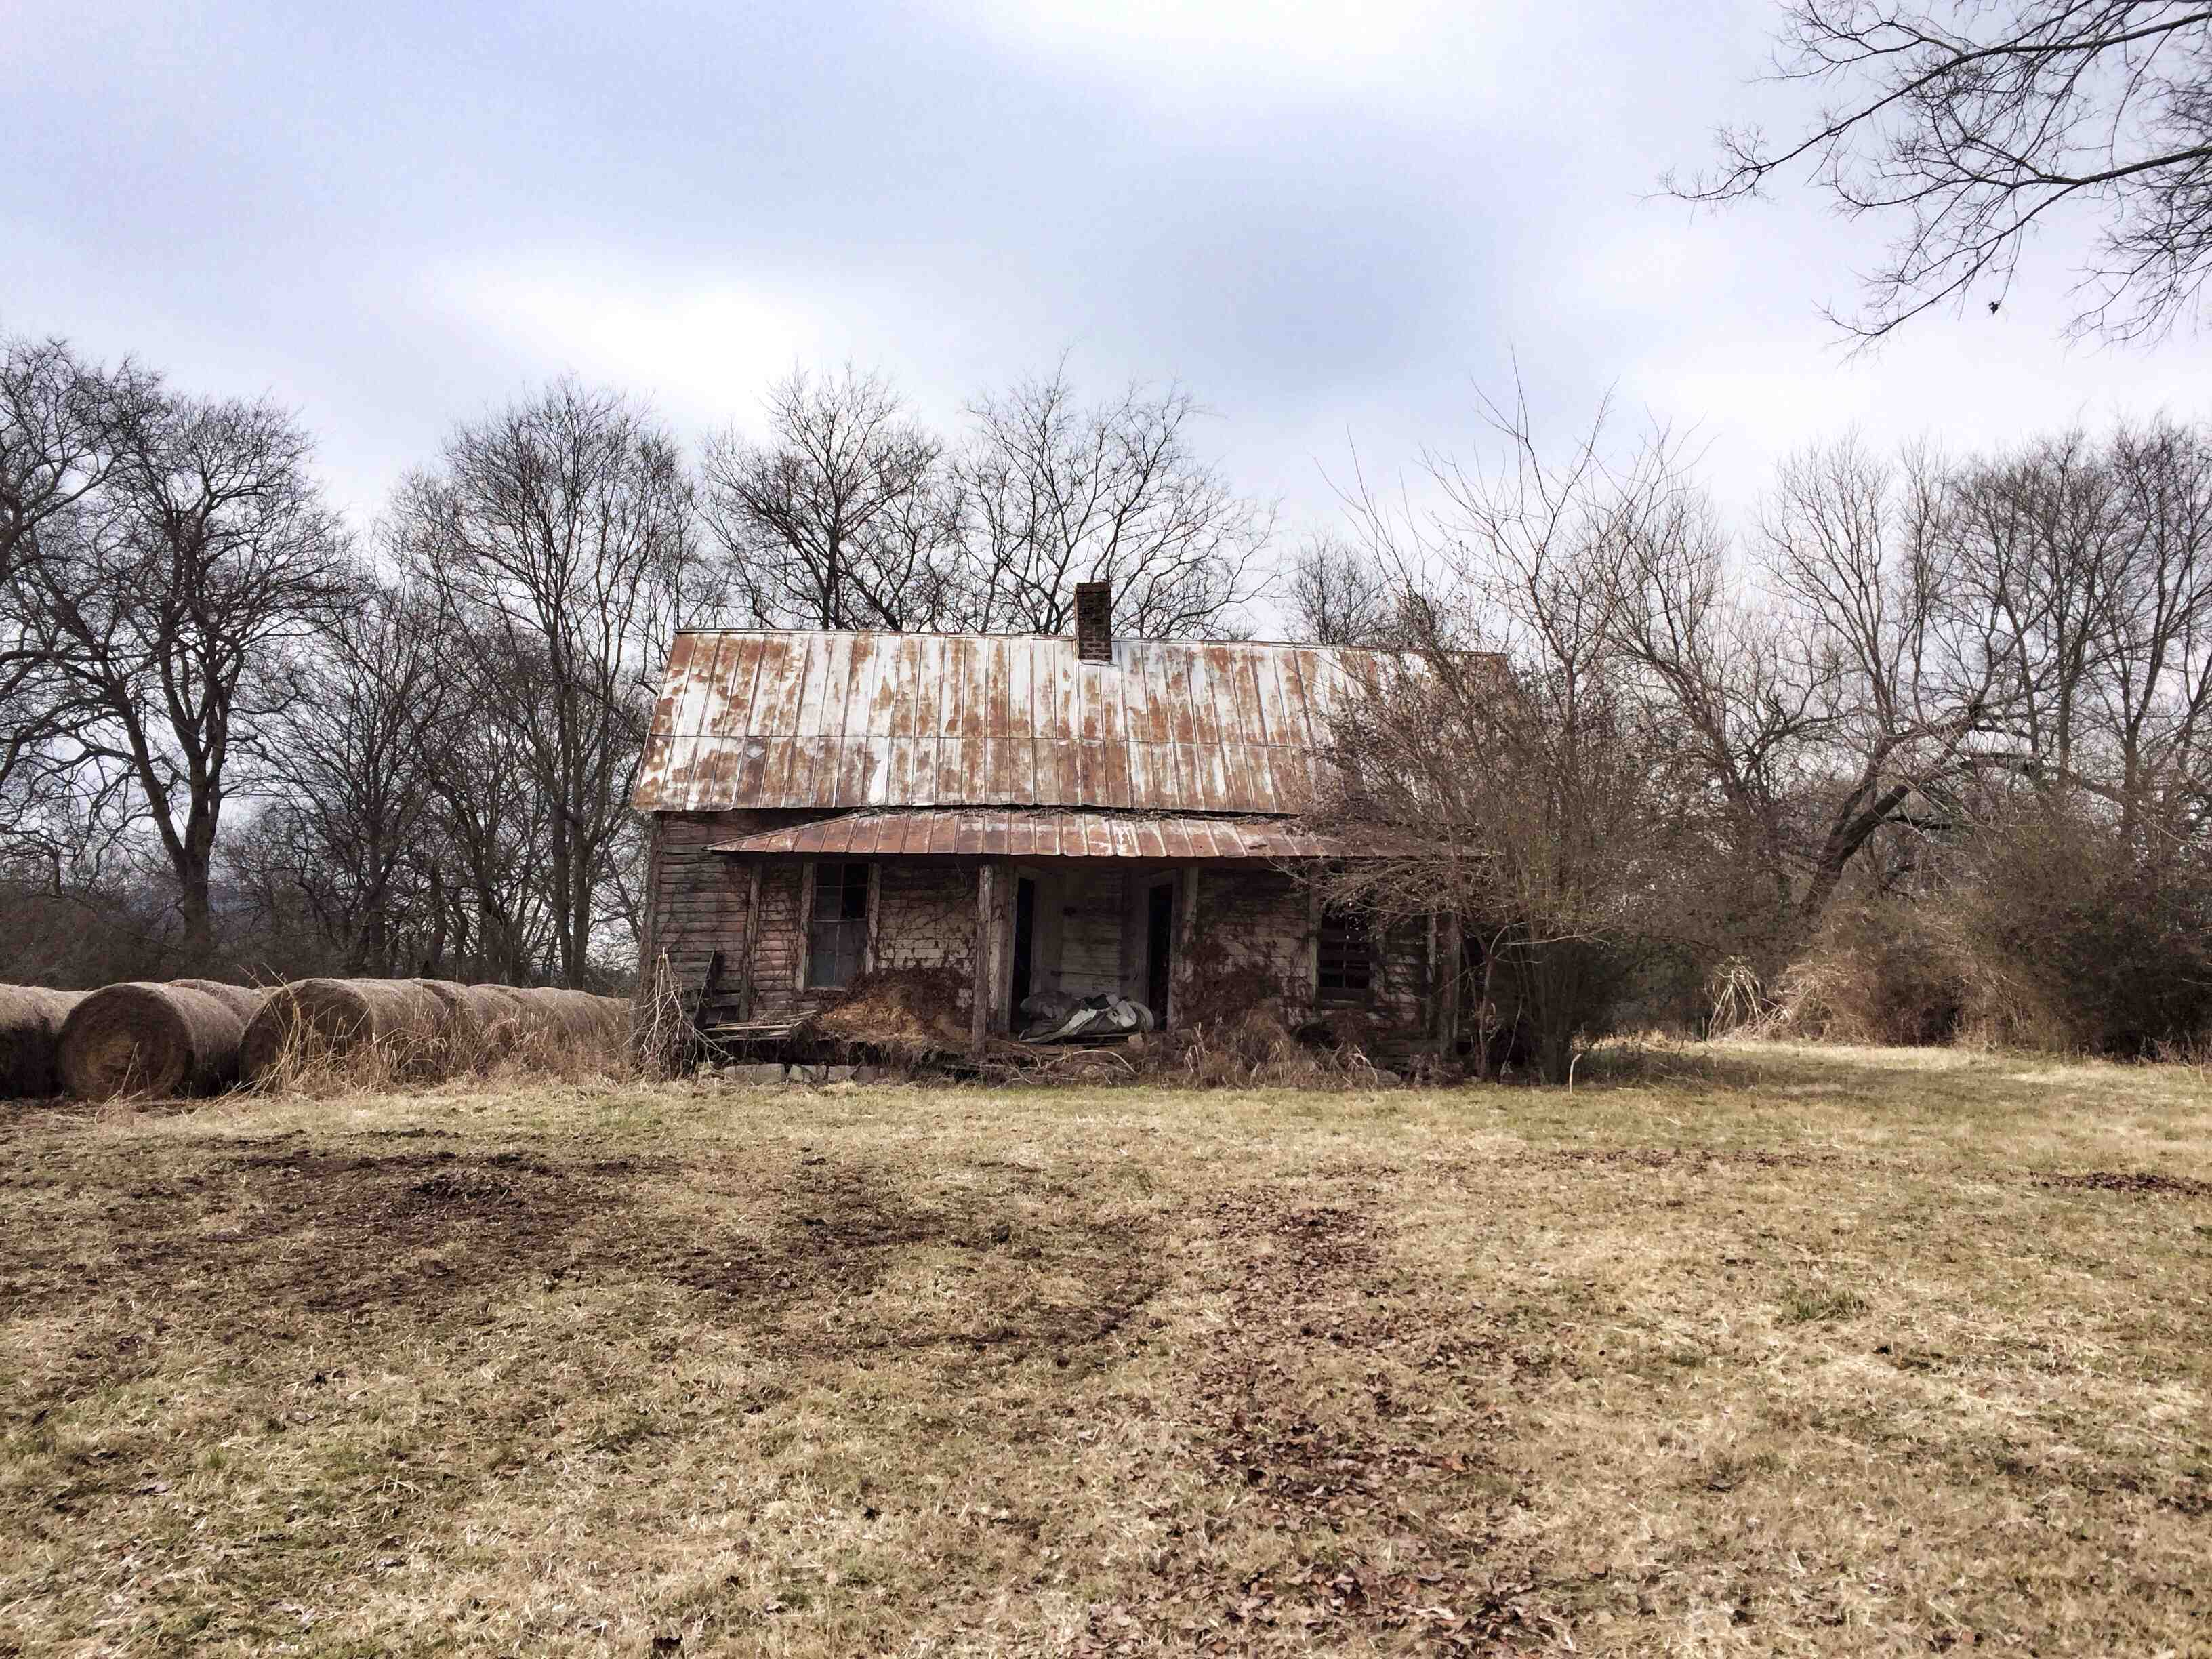 This slave house is still standing on my family's farm in Tennessee. Not proud of it, but a part of history nonetheless. Before my family, the land belonged to the Cherokee. Not proud of that either.